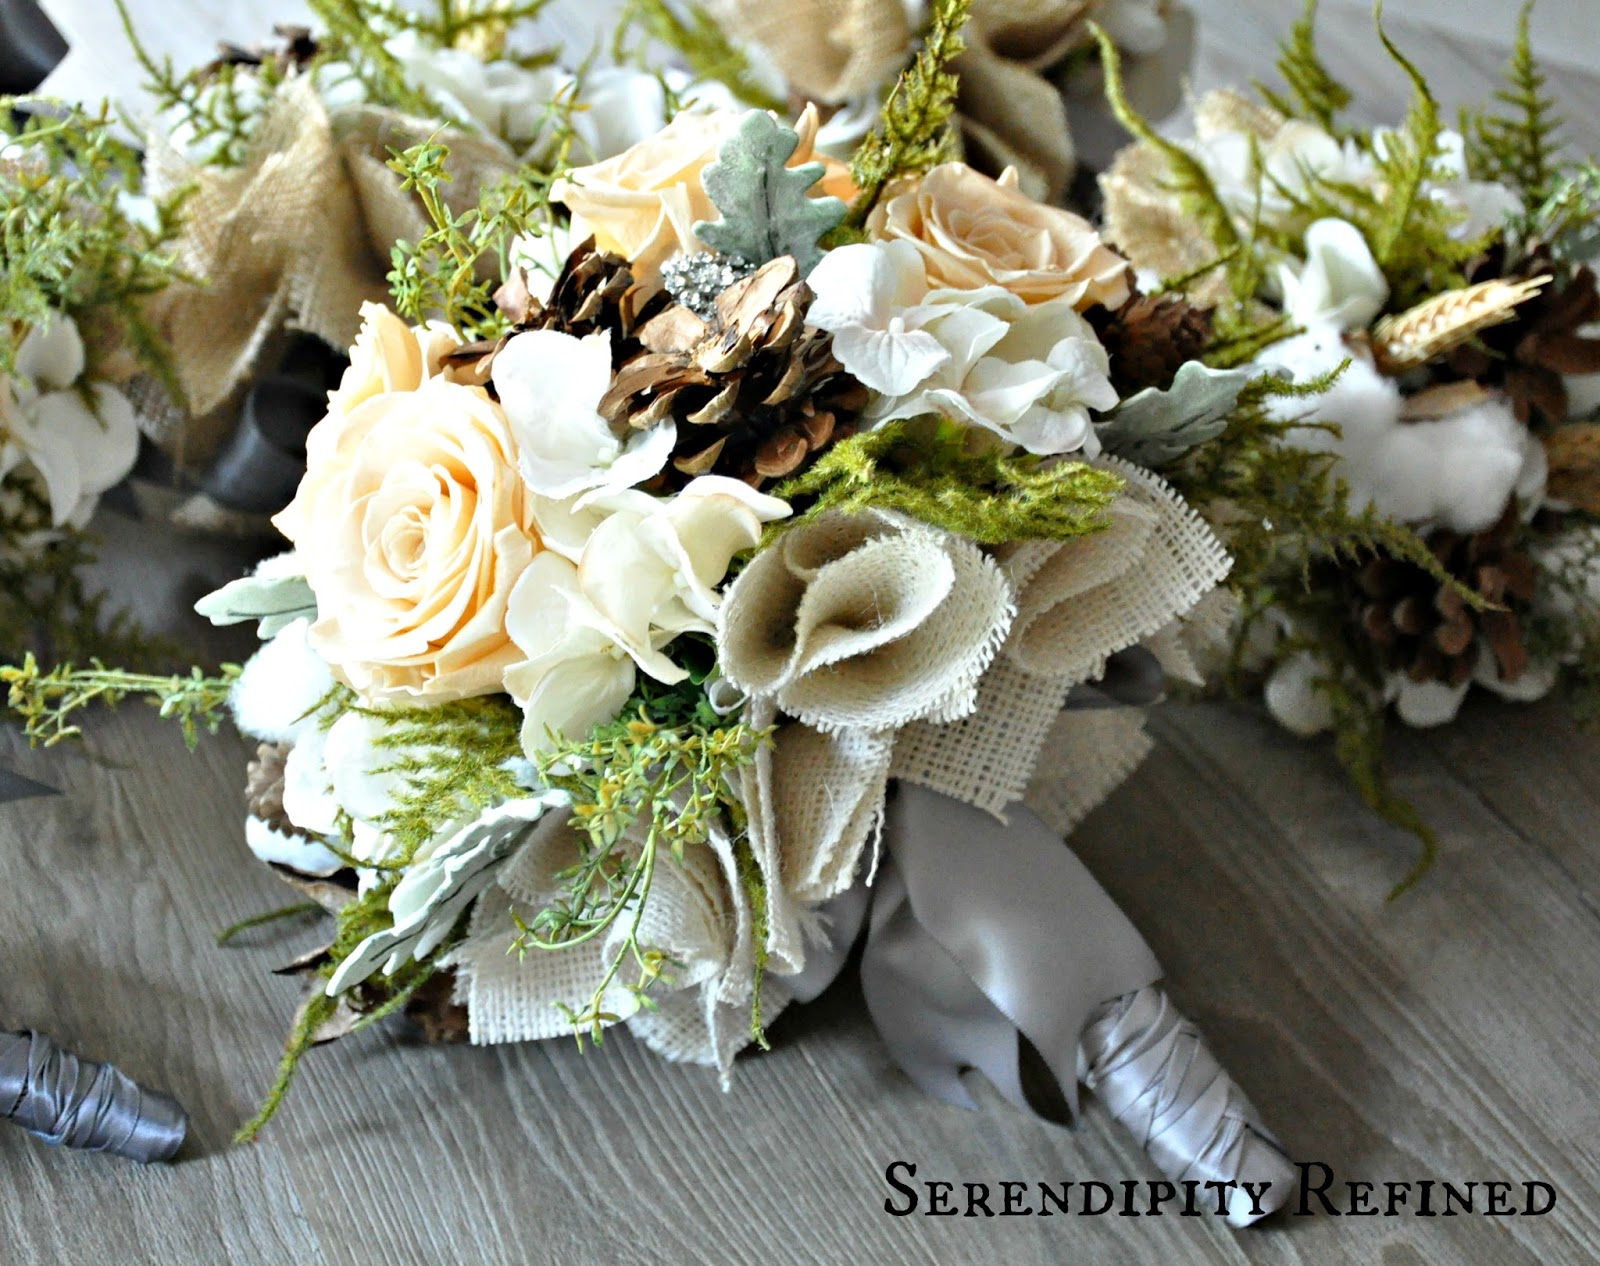 Serendipity refined blog flowers for an autumn wedding pinecones flowers for an autumn wedding pinecones roses burlap and cotton izmirmasajfo